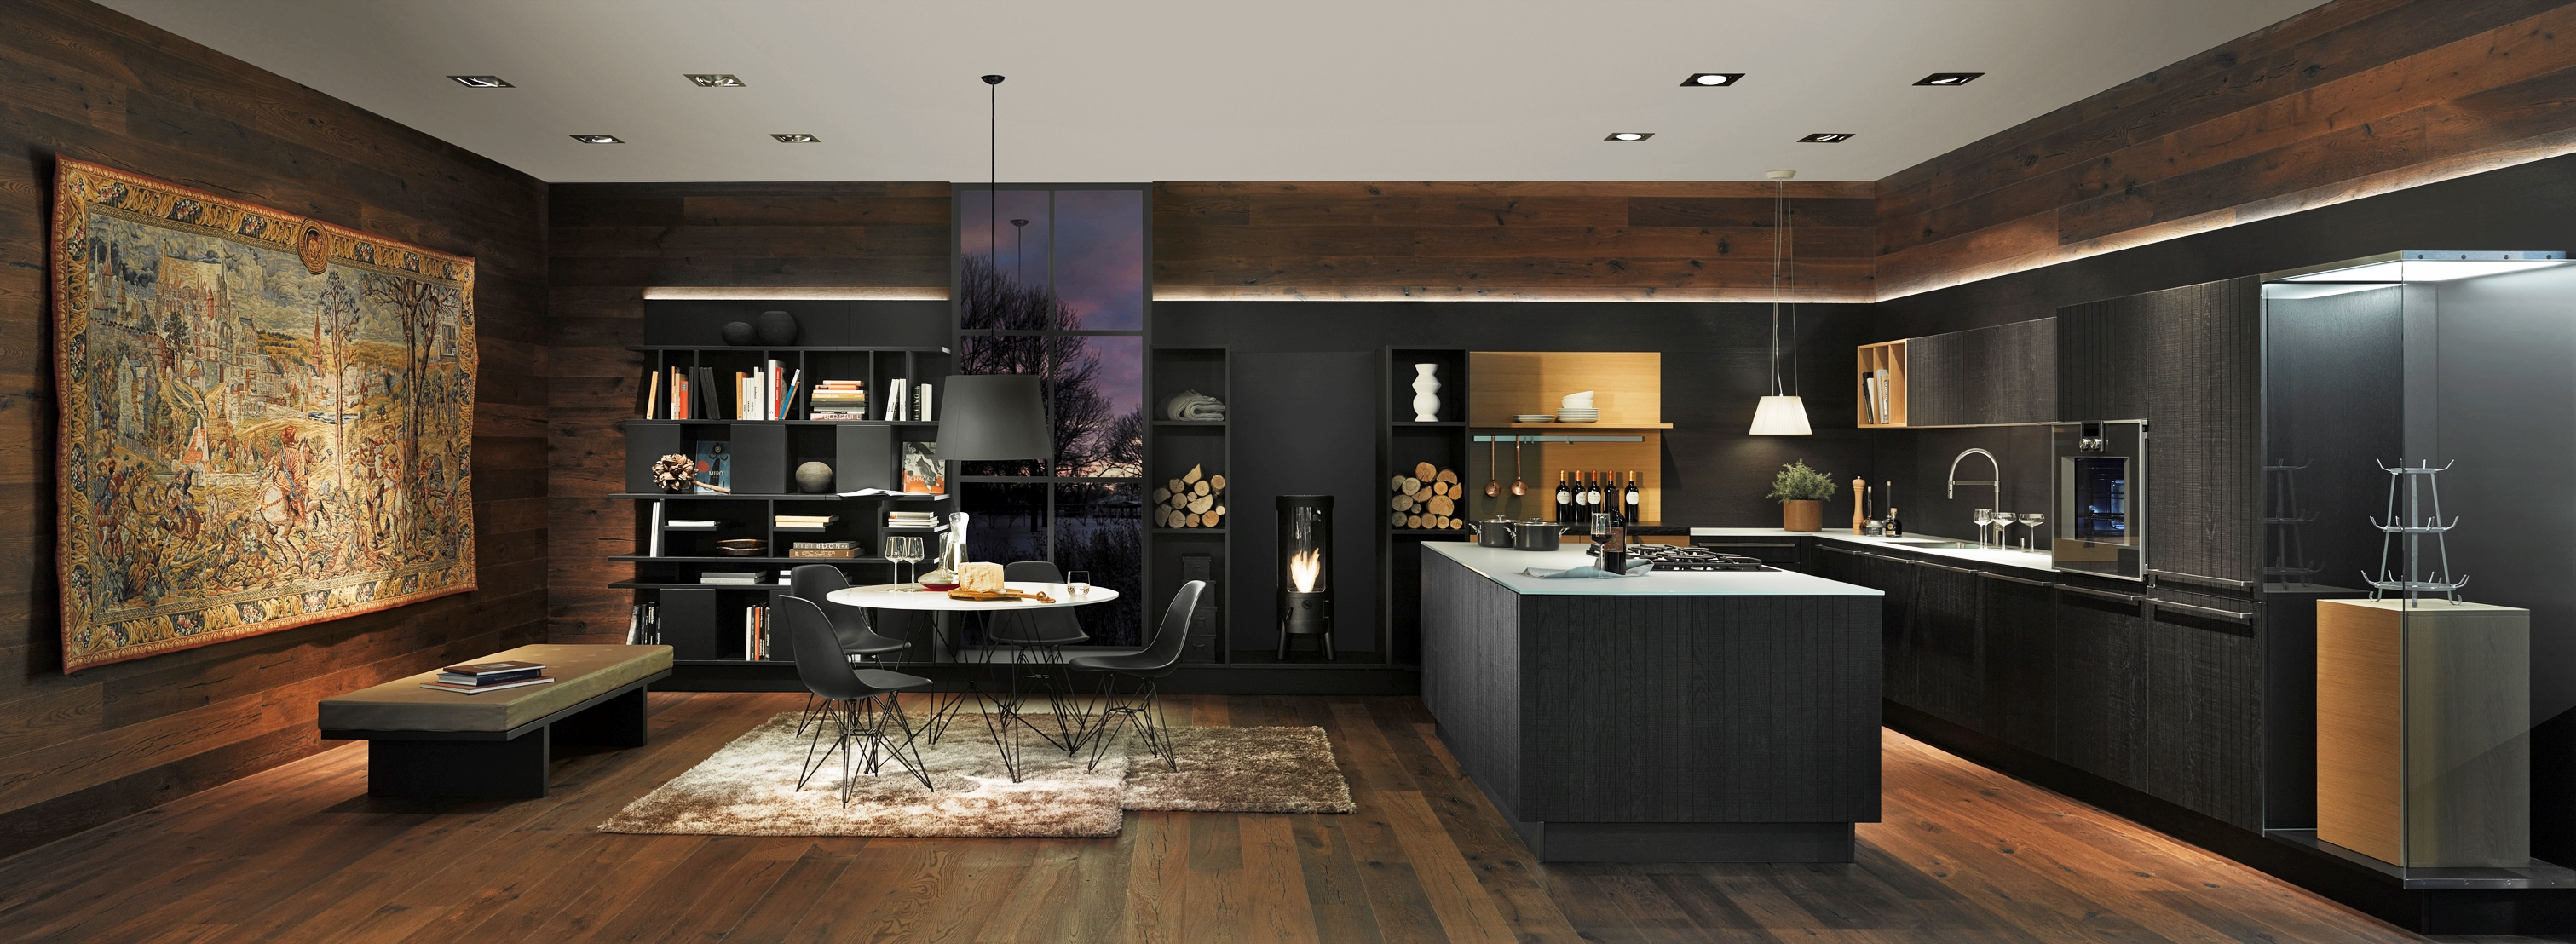 Neo chalet nolte home riga for Cucine moderne lineari lusso